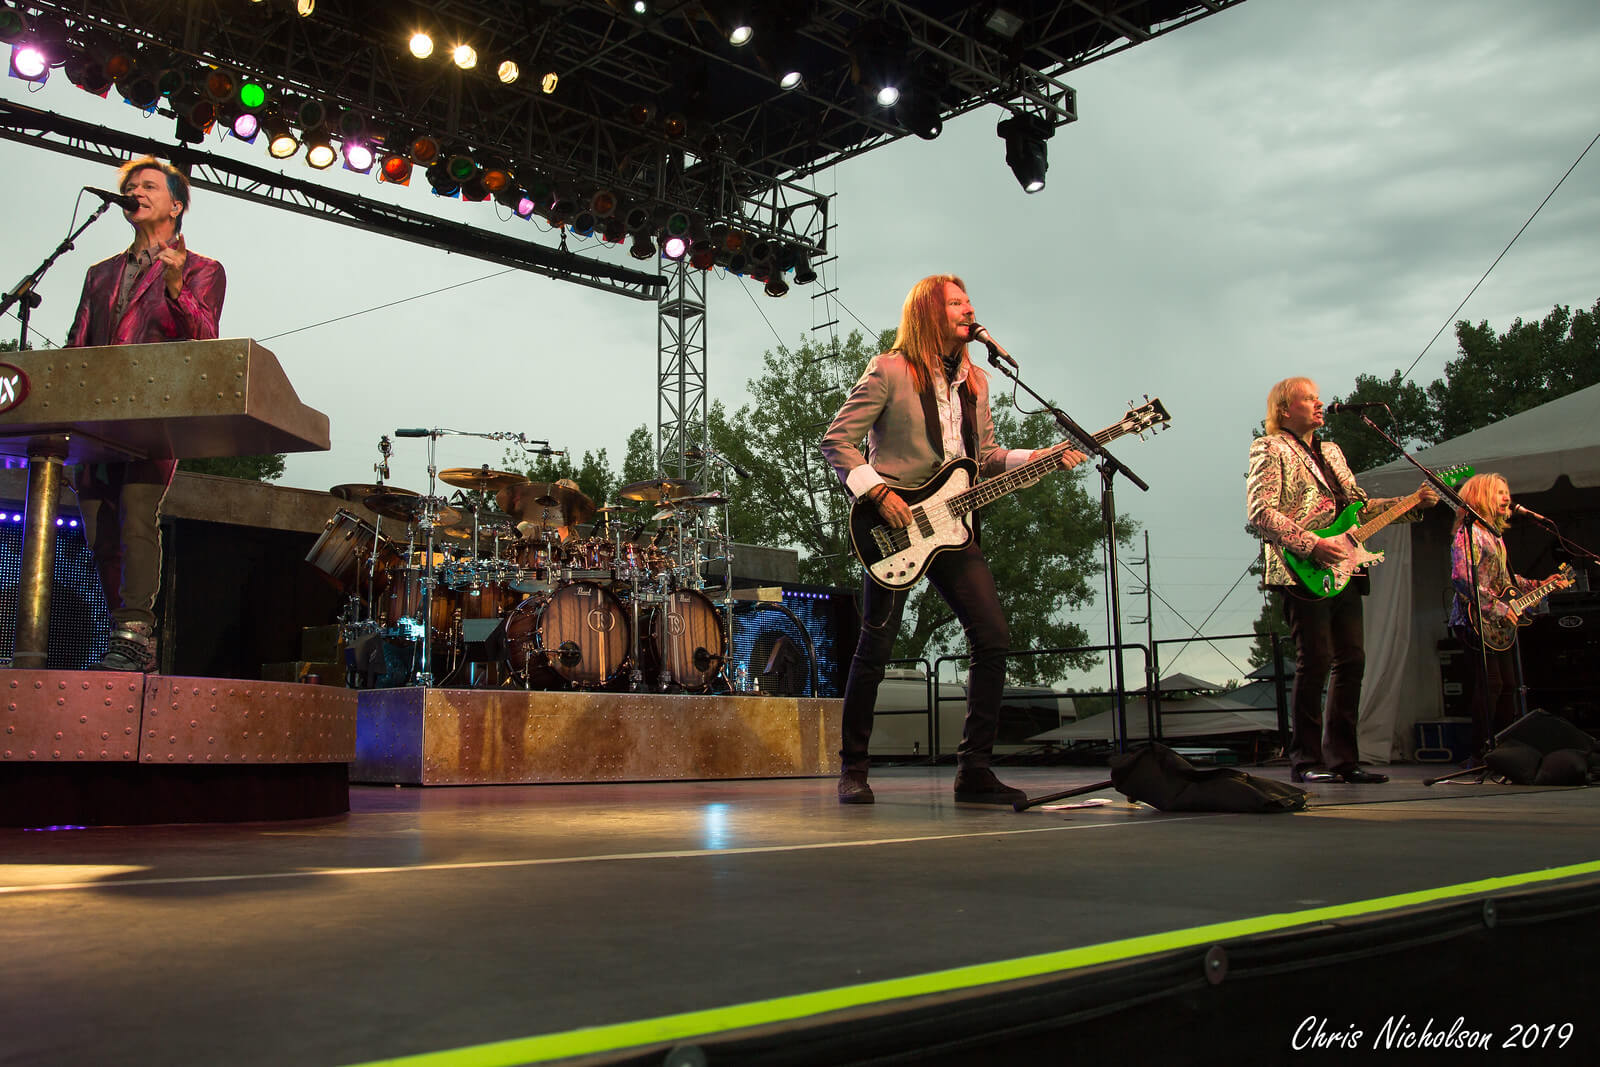 Styx owned the night with music for everyone. (Photo by Chris Nicholson)